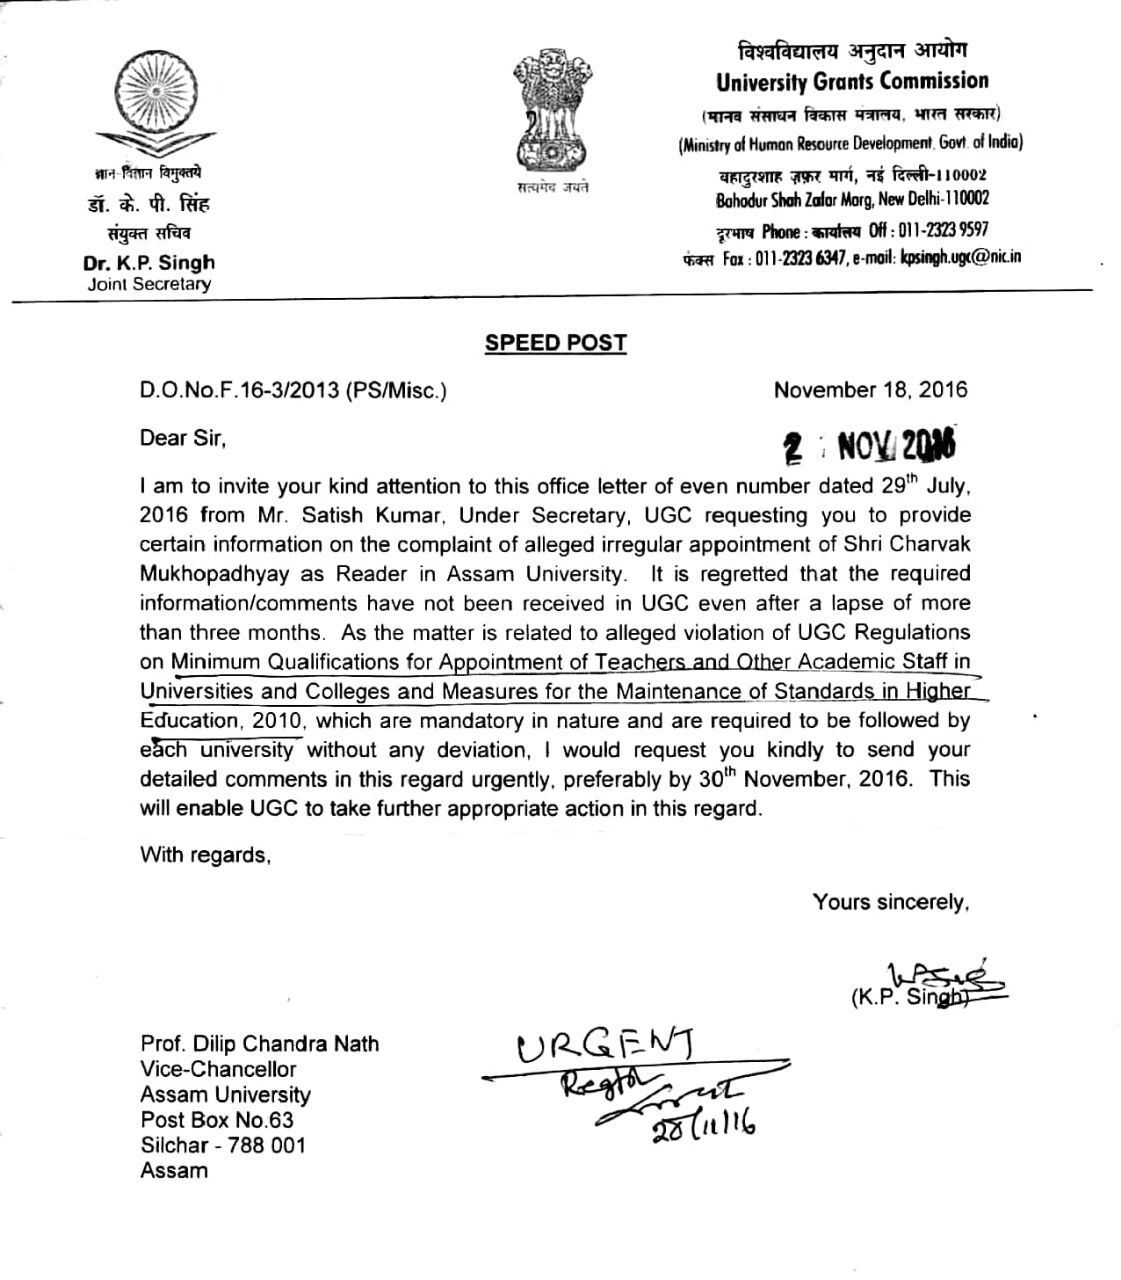 Letter sent by the UGC to the Assam University vice chancellor in November 2016